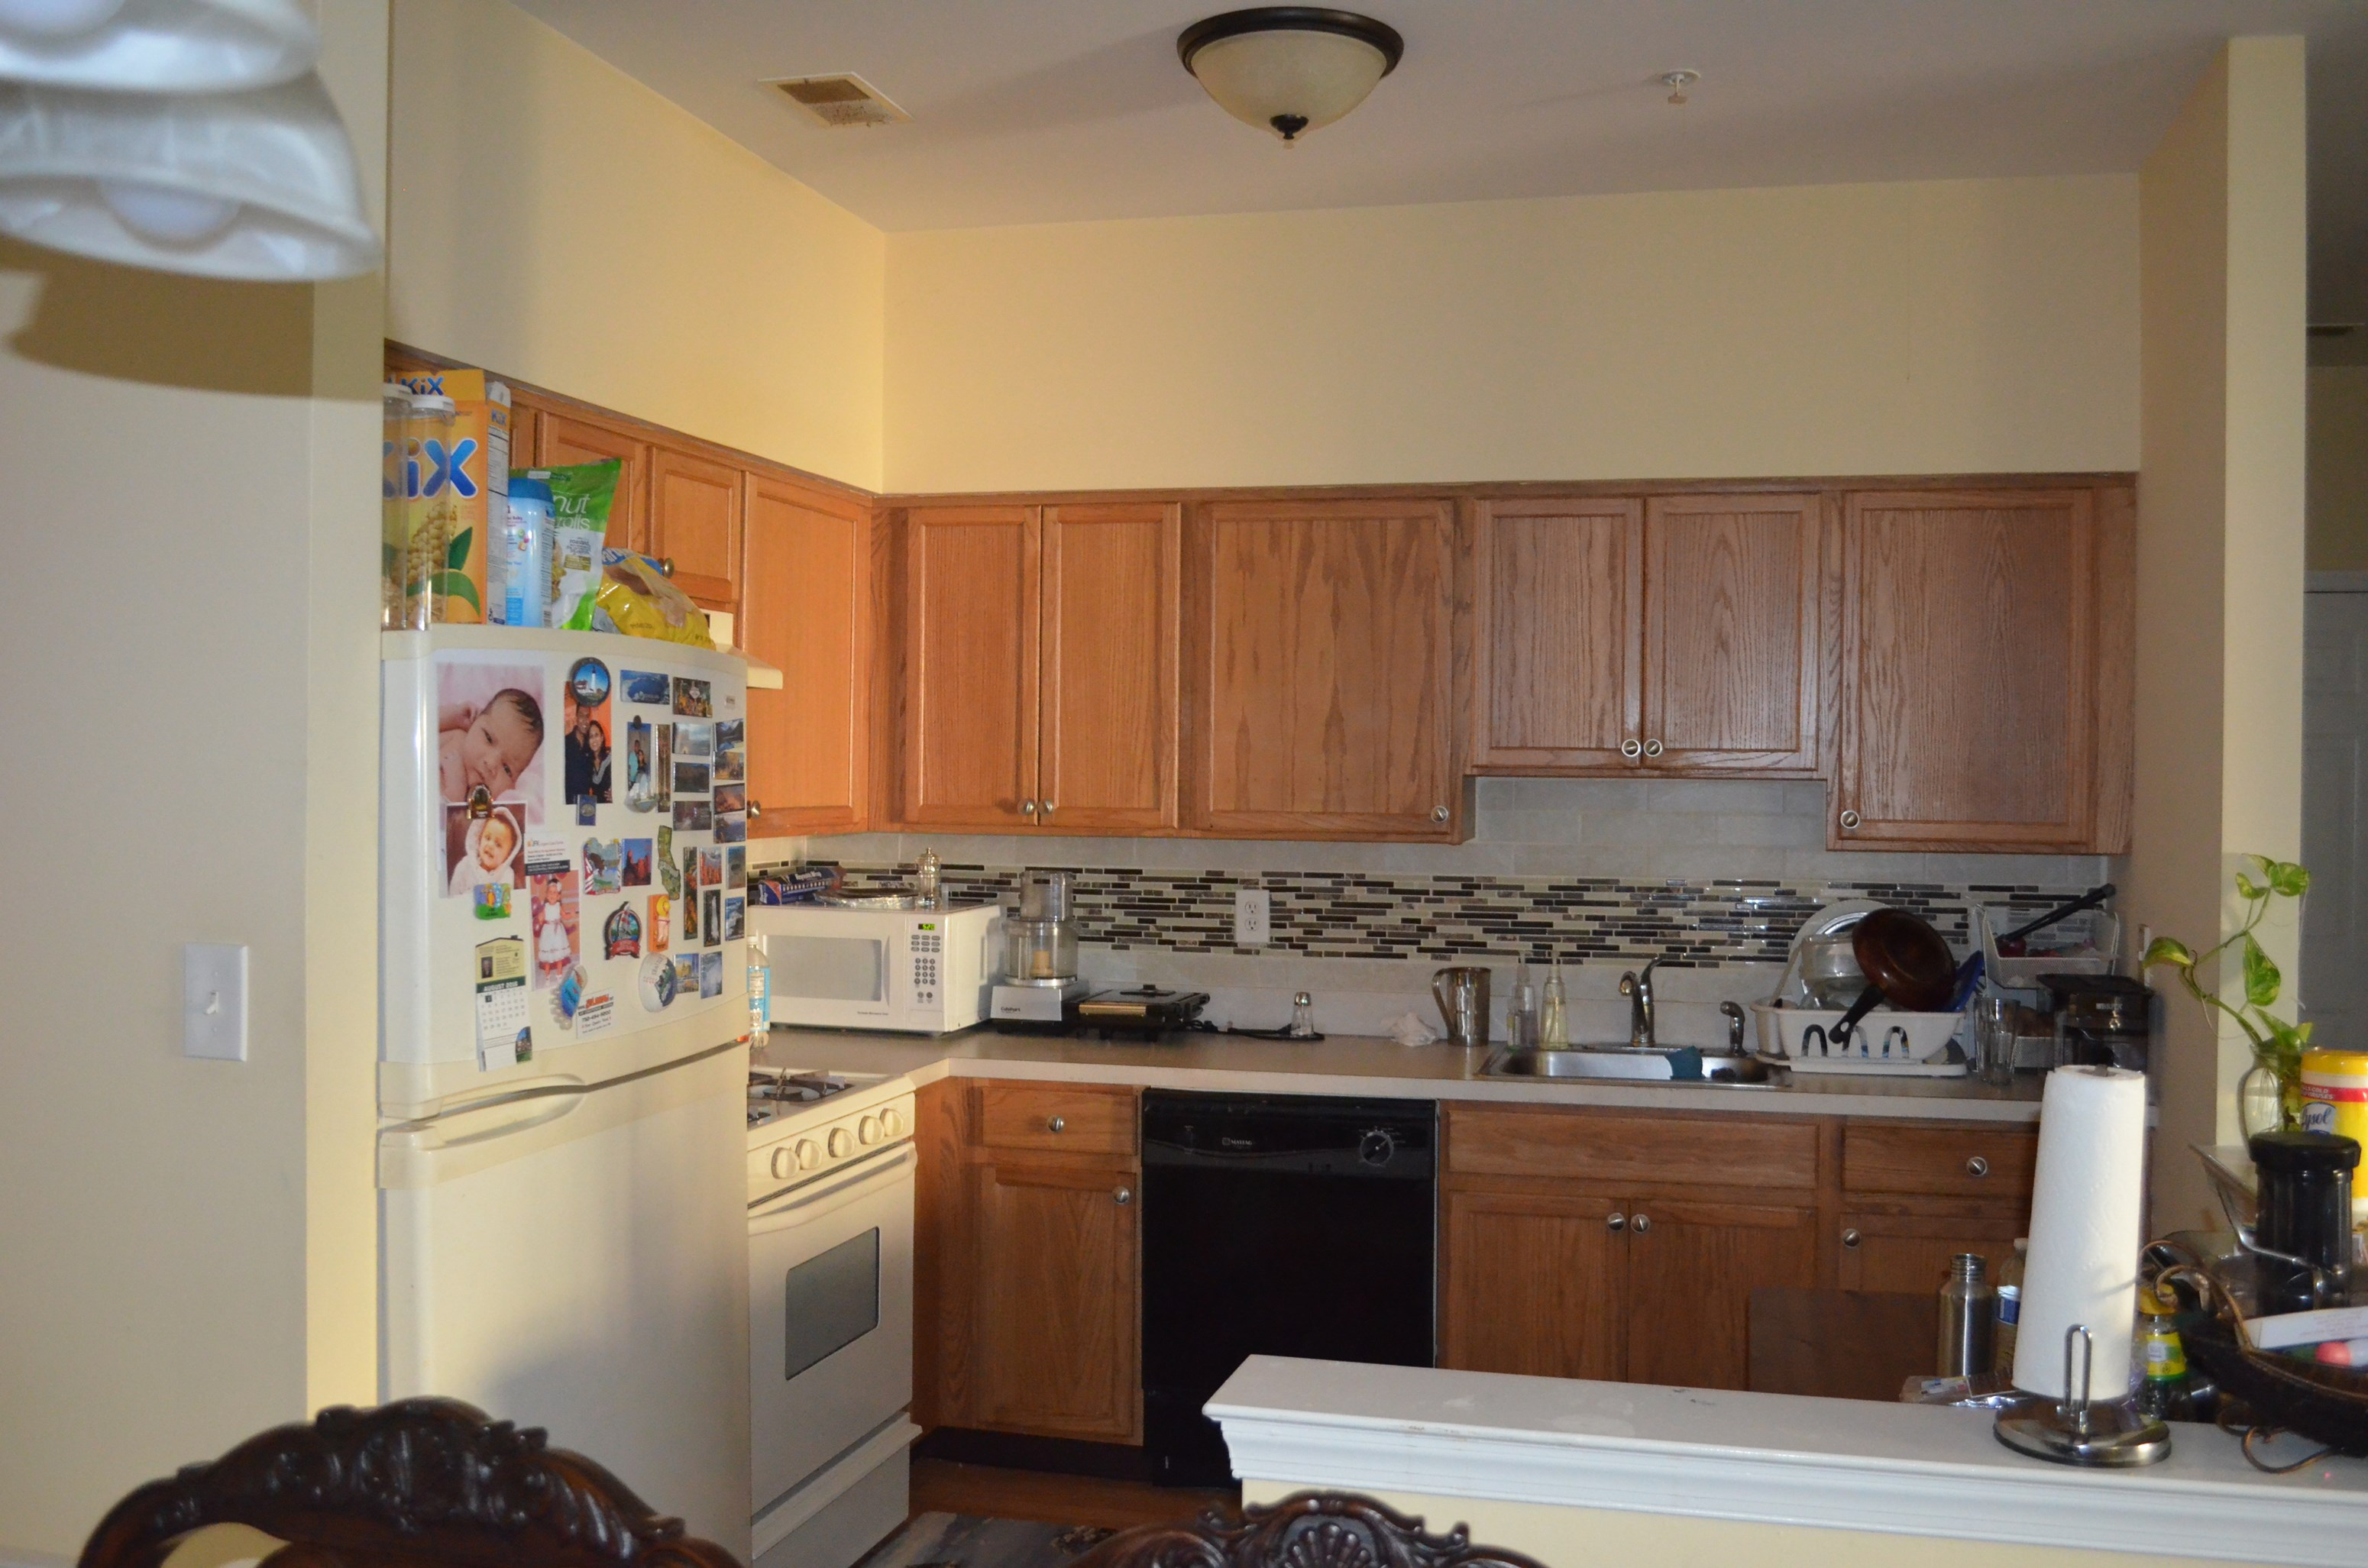 2 Bedroom Condo Available For Rent In Traditions South Plainfield ...